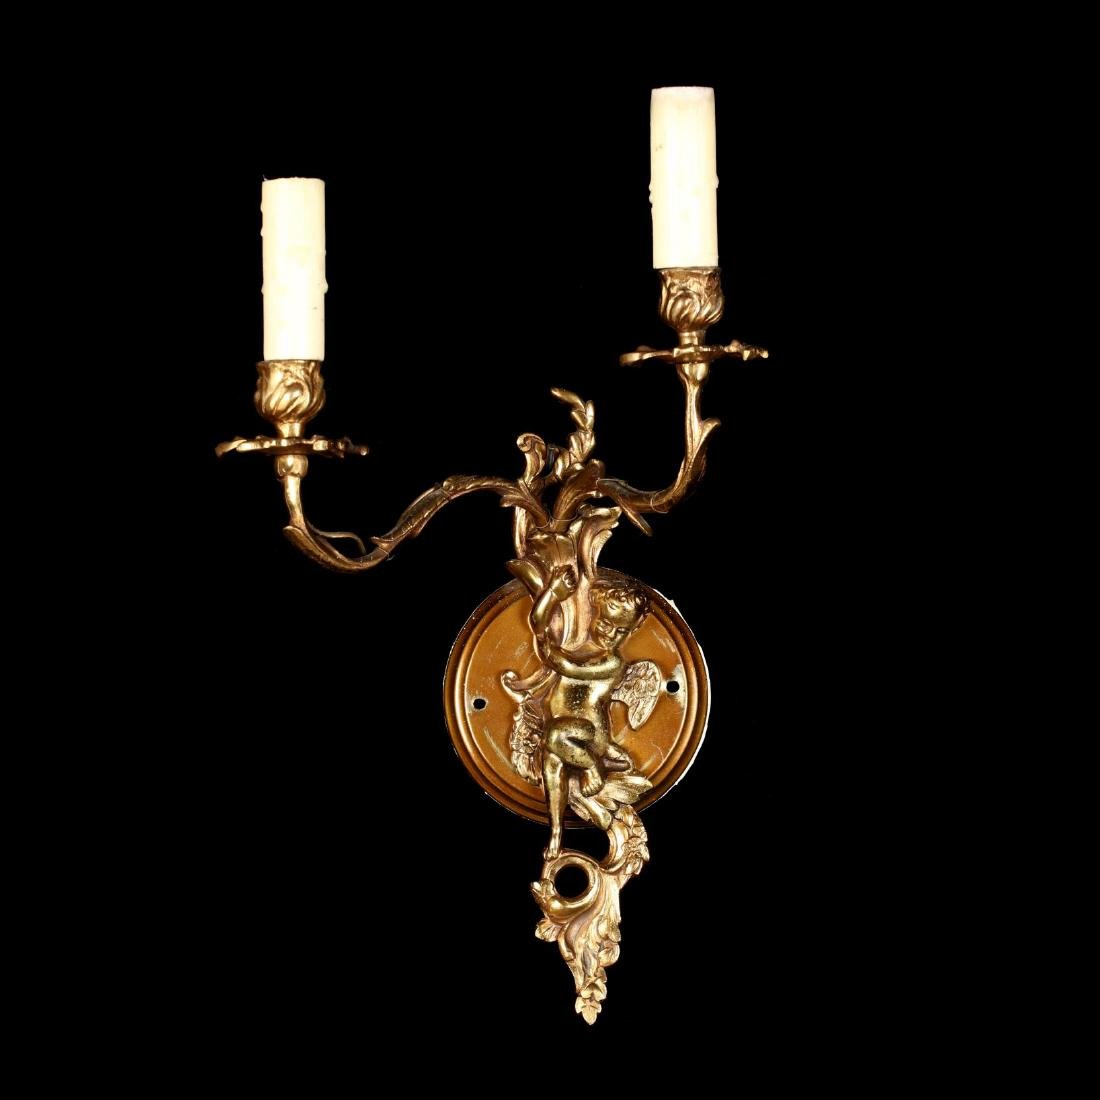 Pair of French Baroque Style Figural Wall Sconces - 5